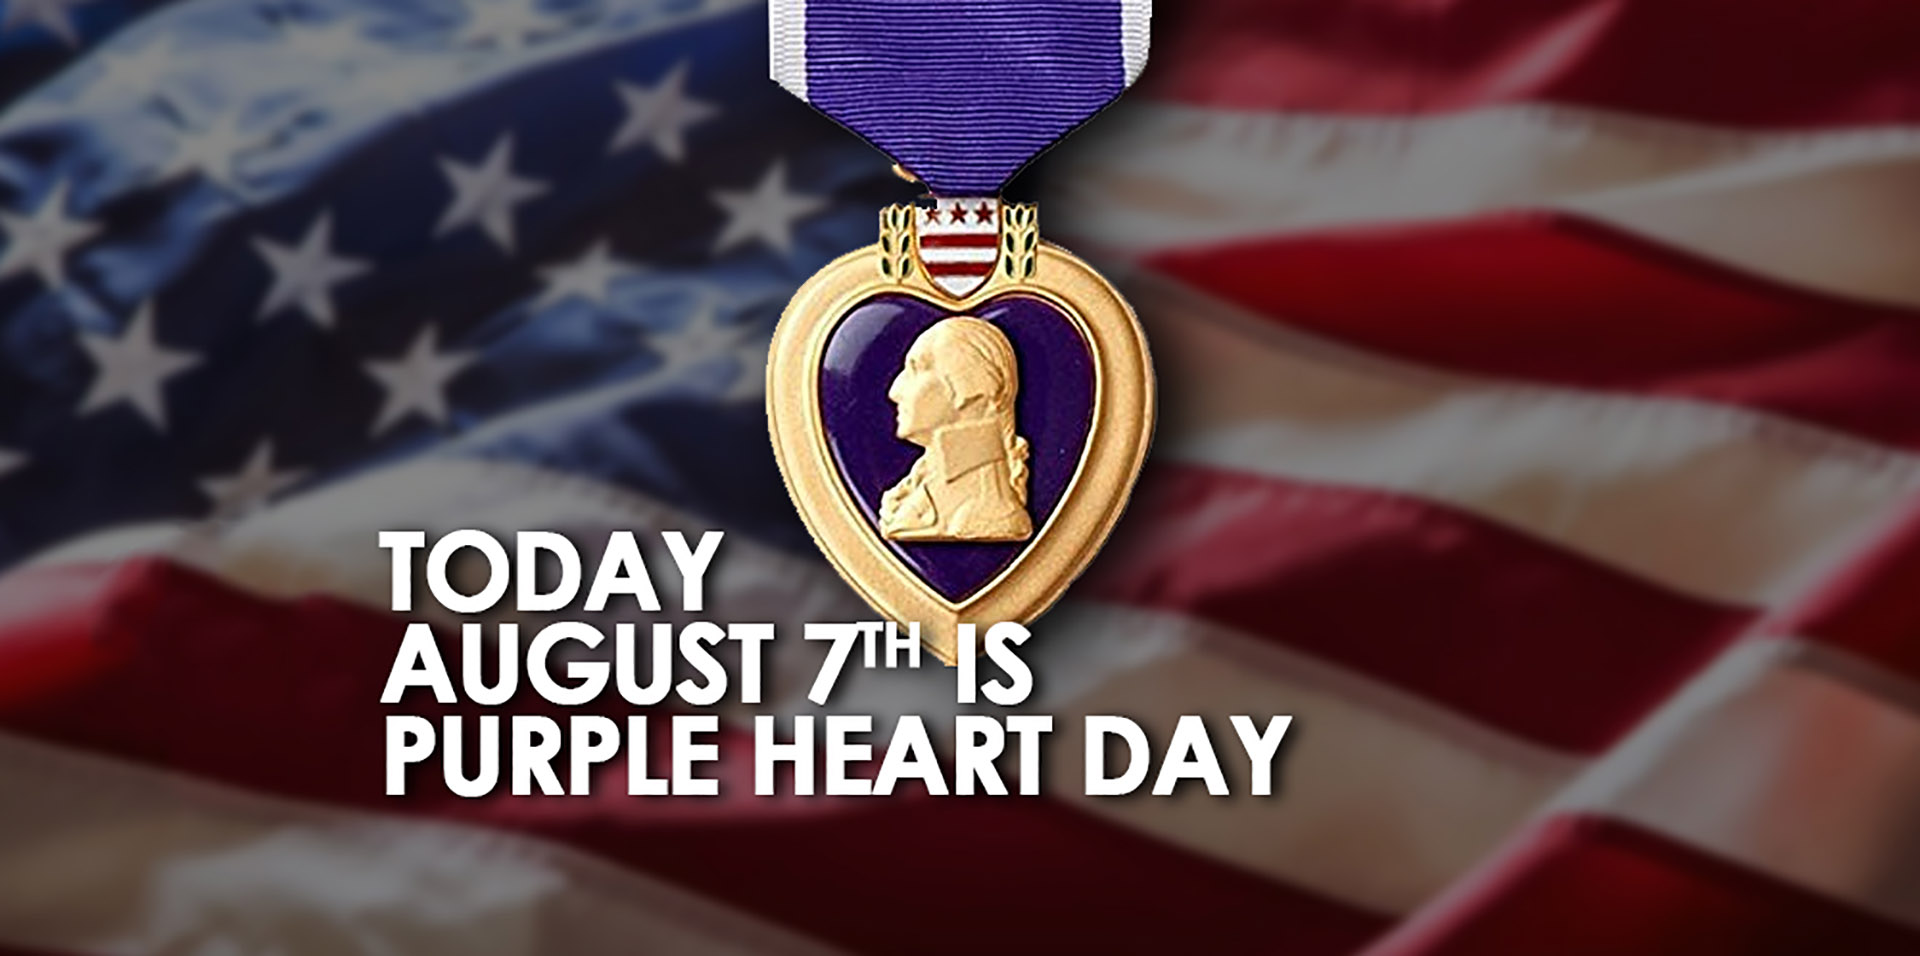 Purple Heart Day Aug 7 Digital Graphic for Digital Signage Communications